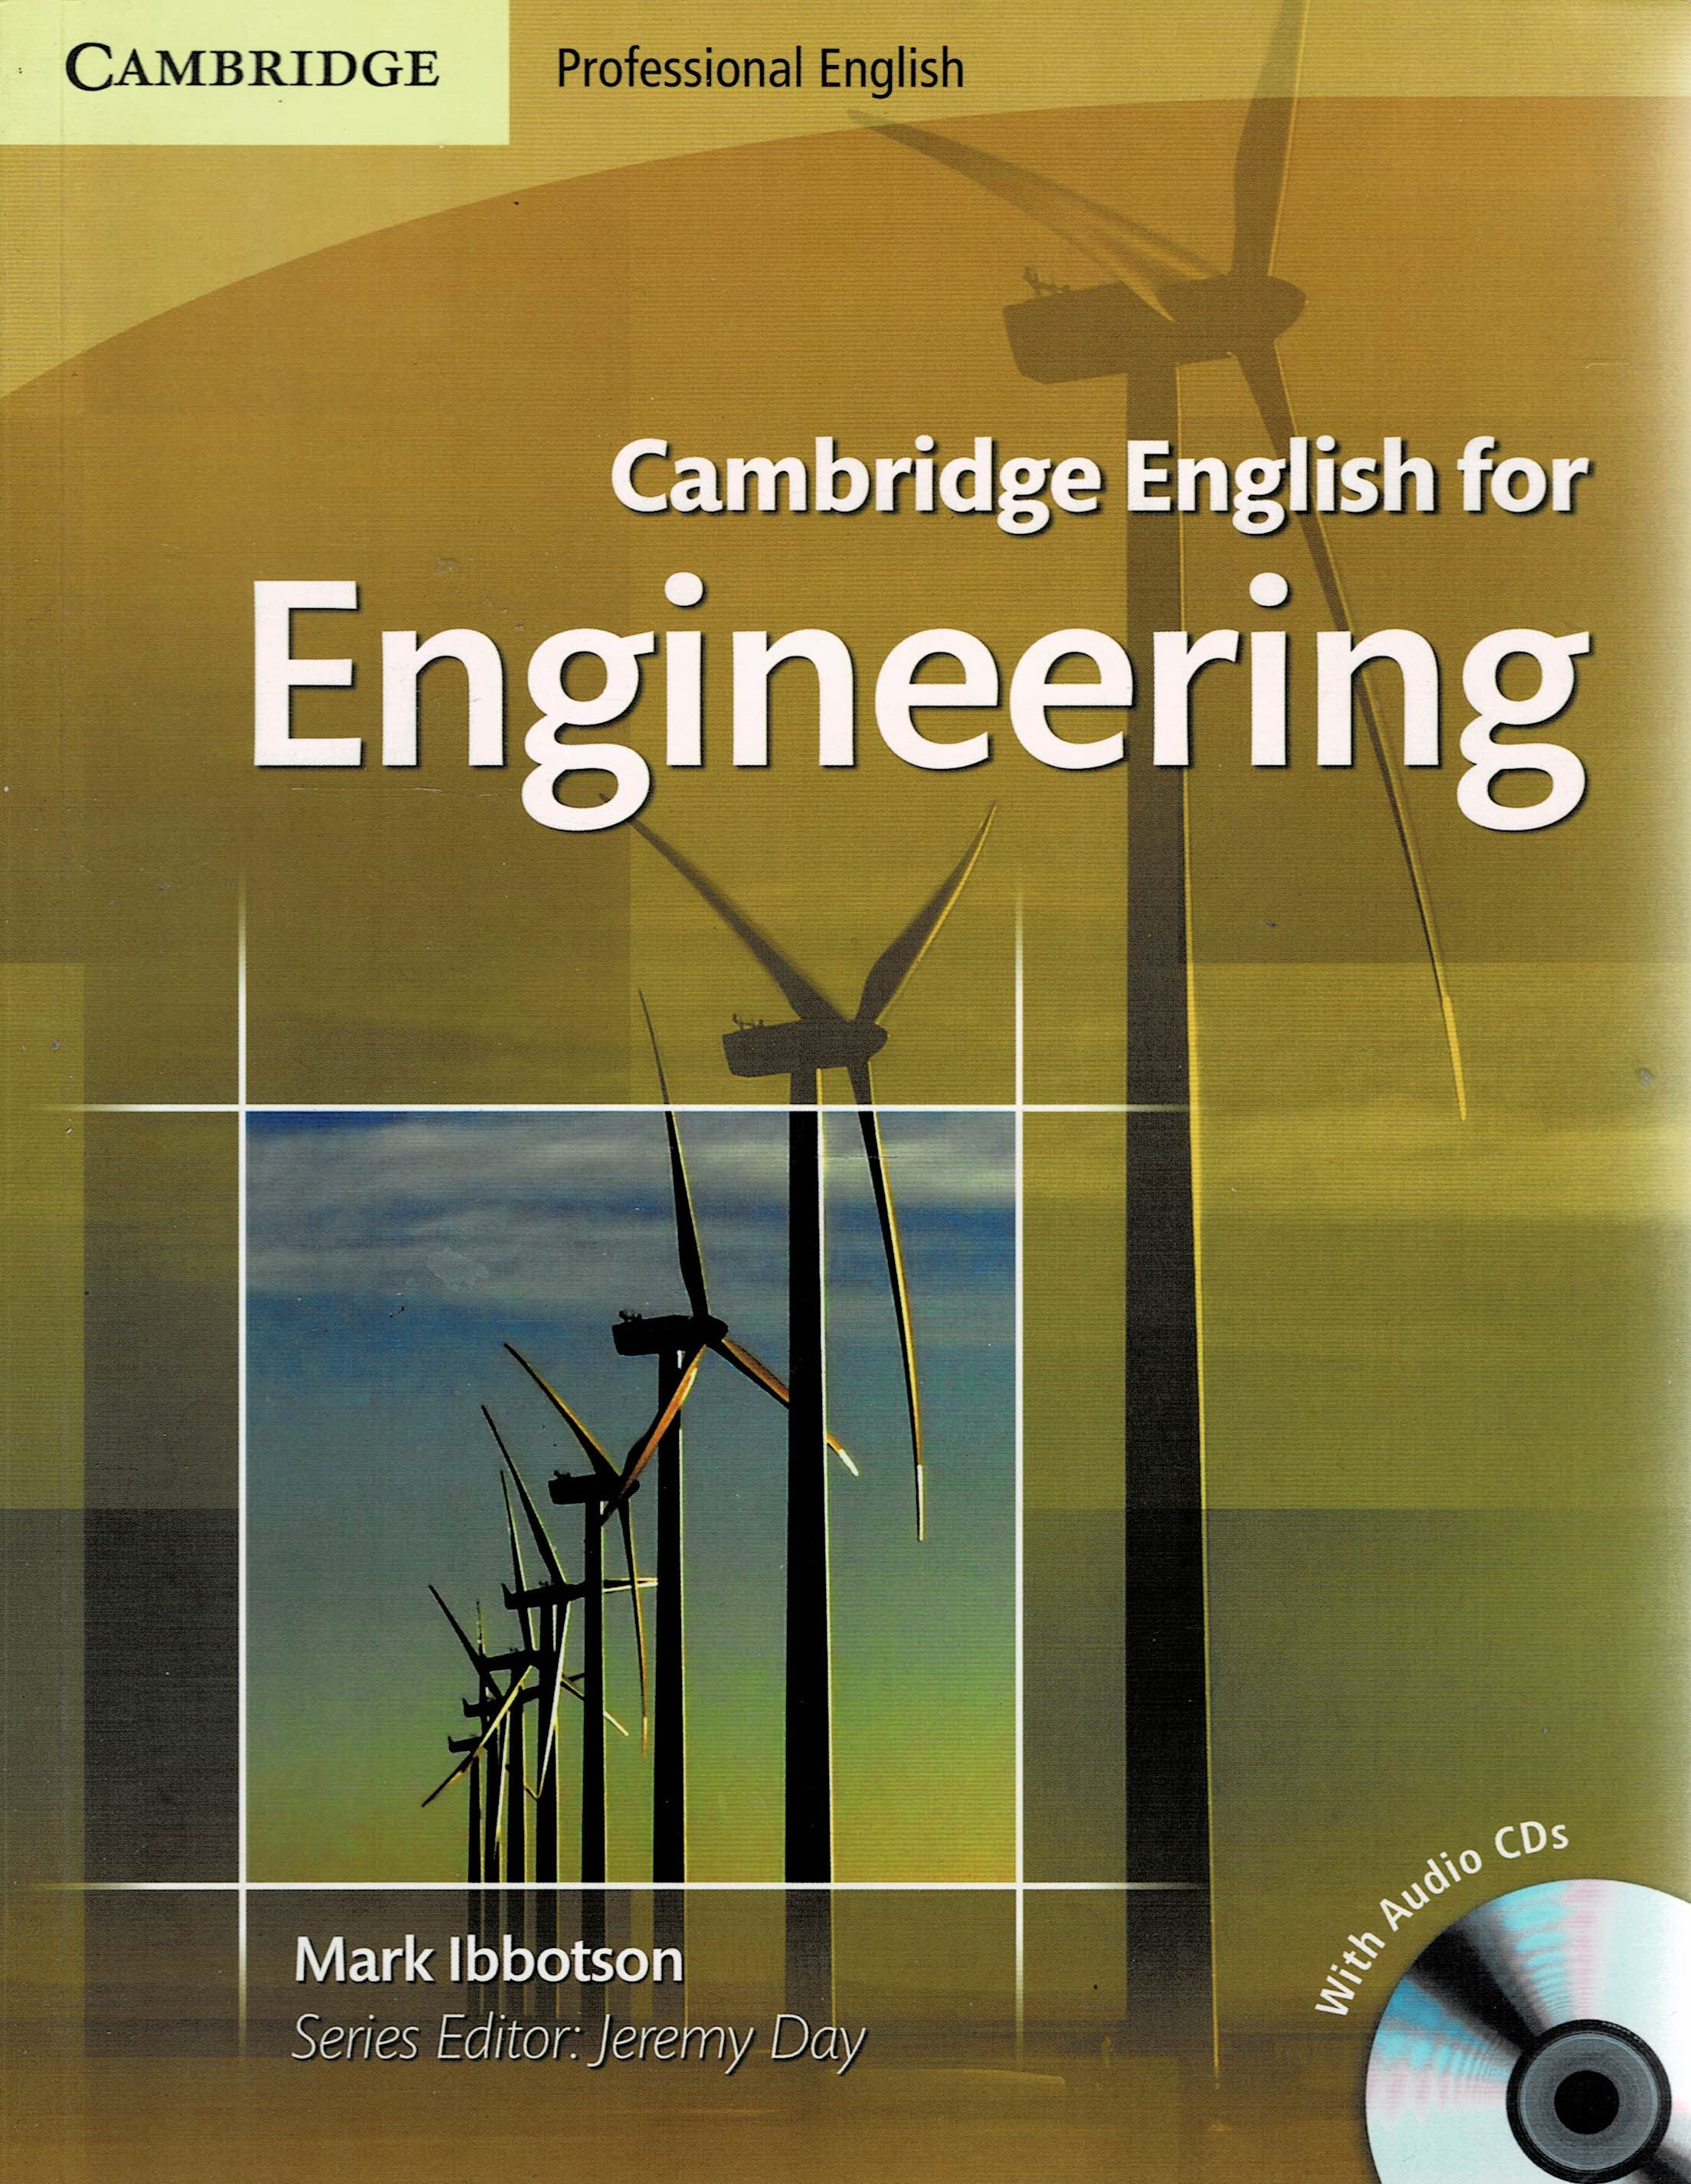 Ibbotson, Mark: Cambridge English for Engineering